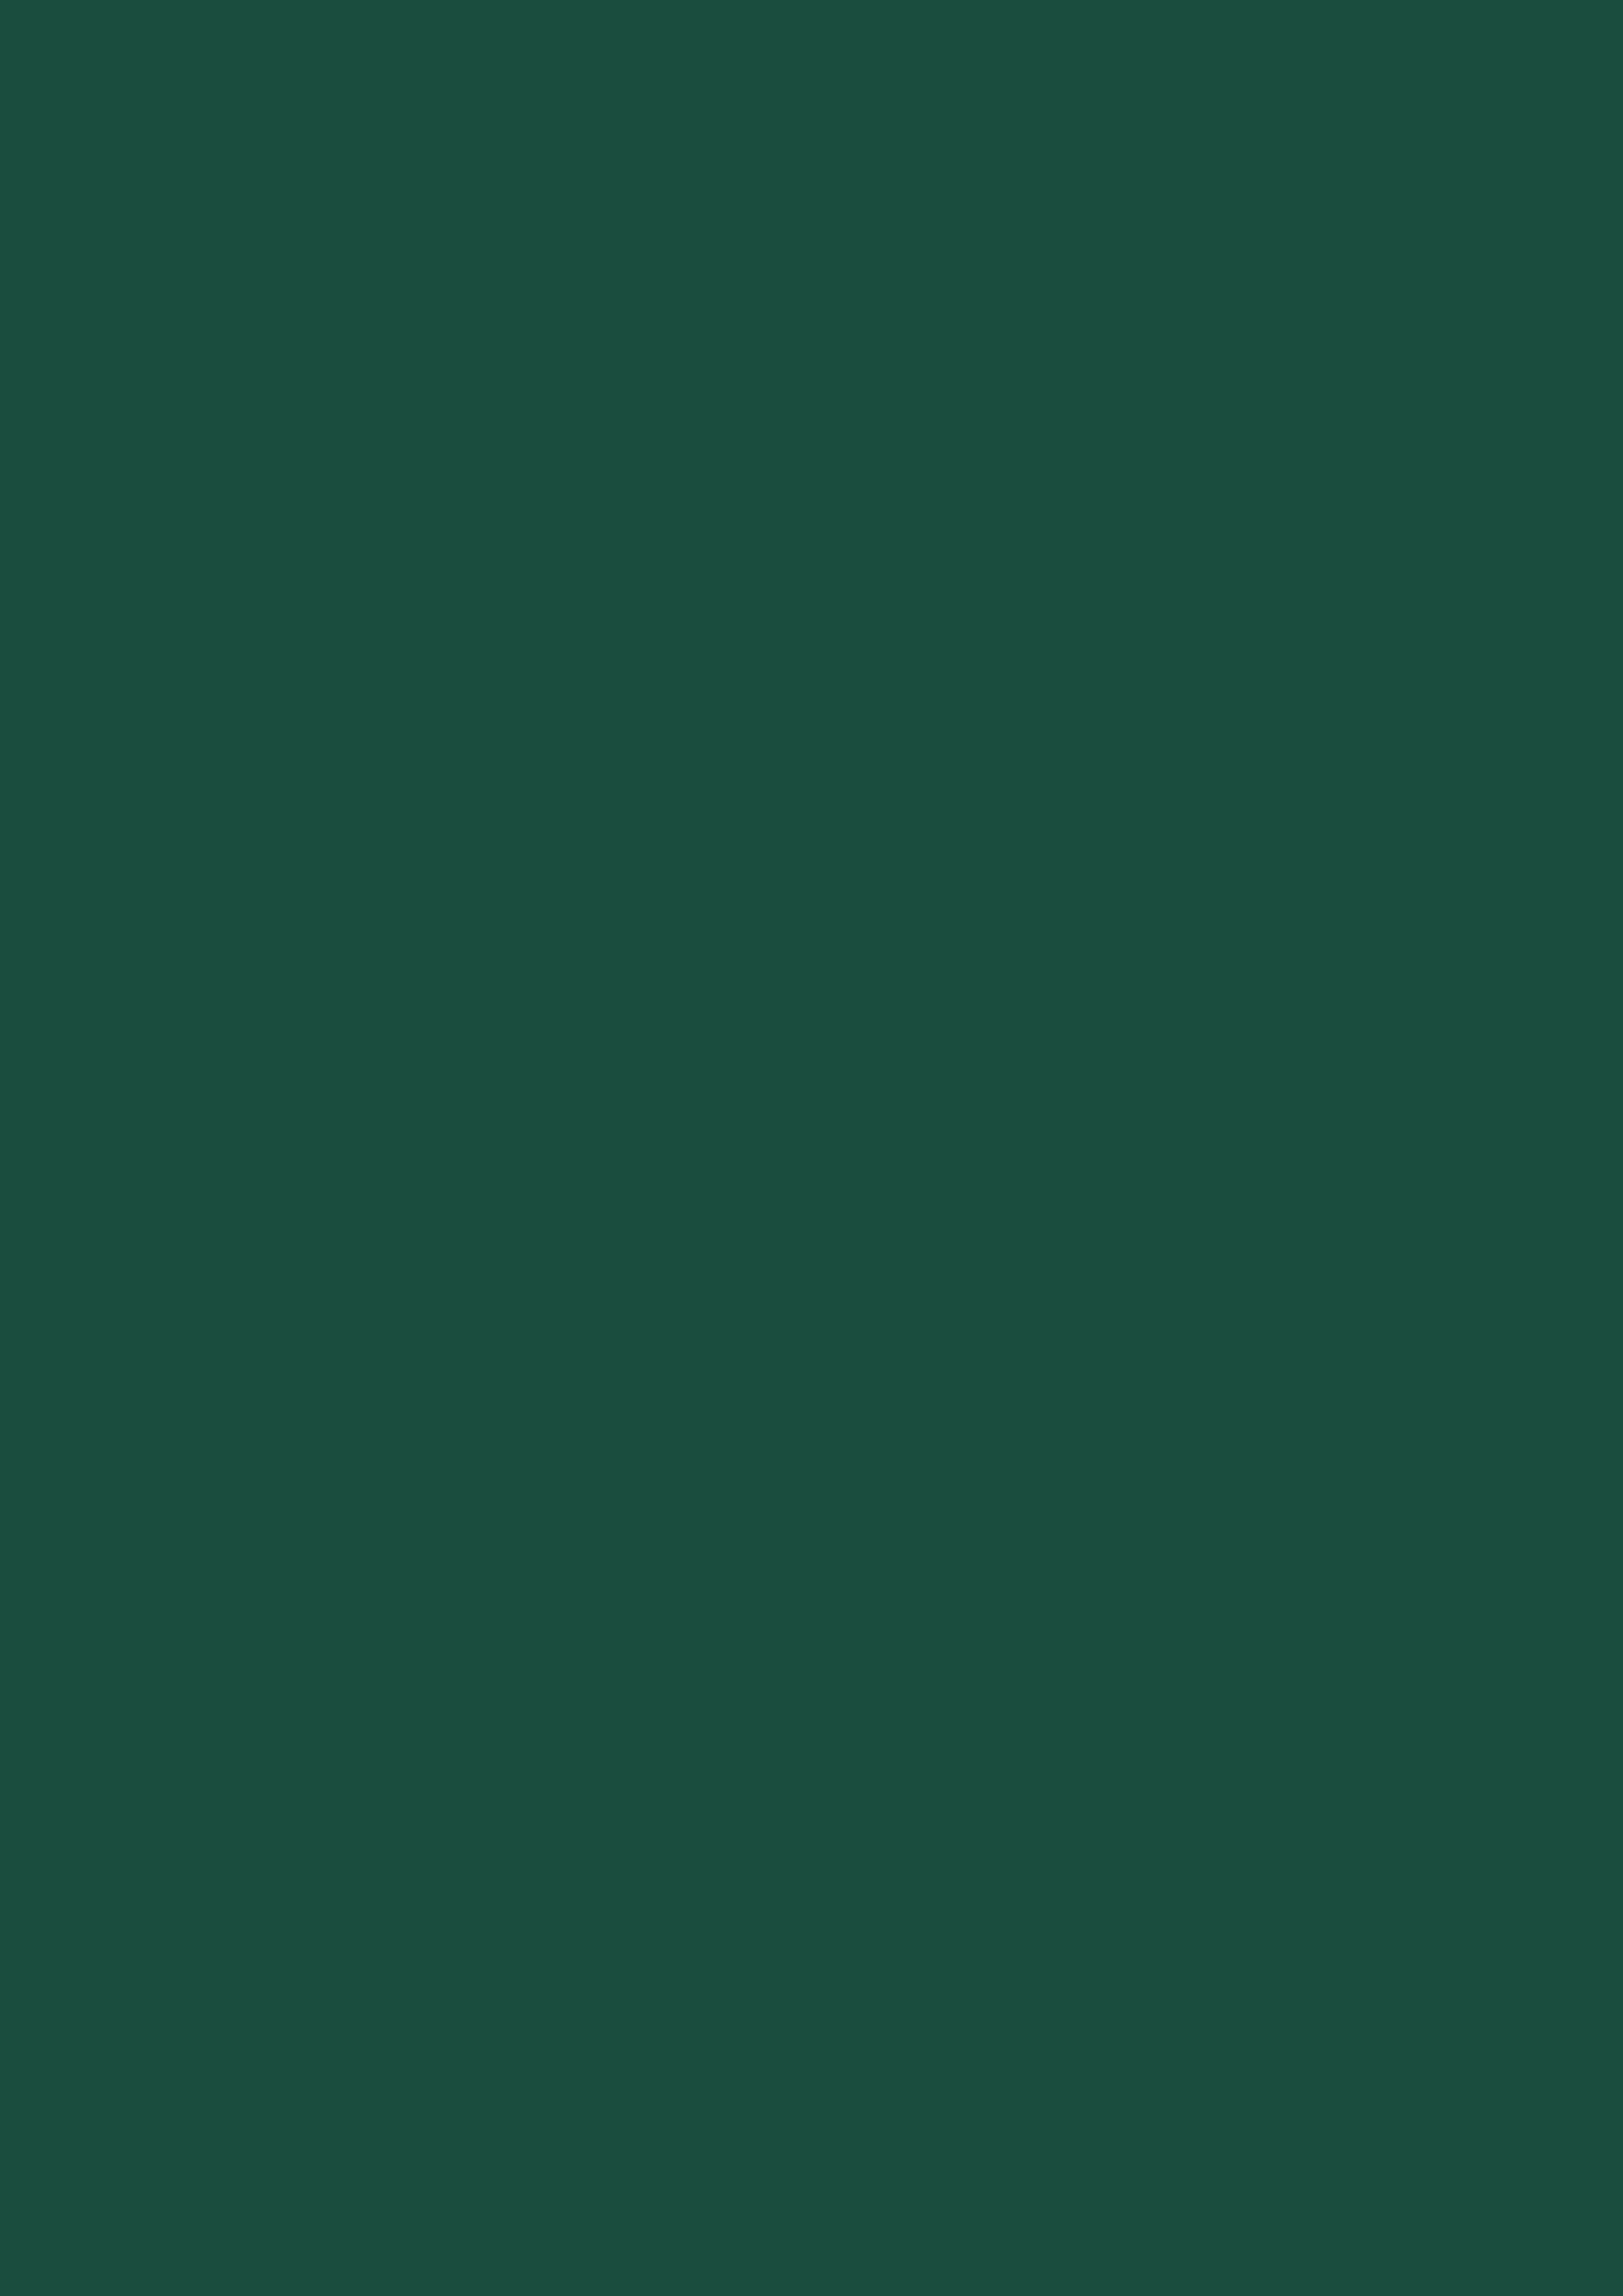 2480x3508 English Green Solid Color Background